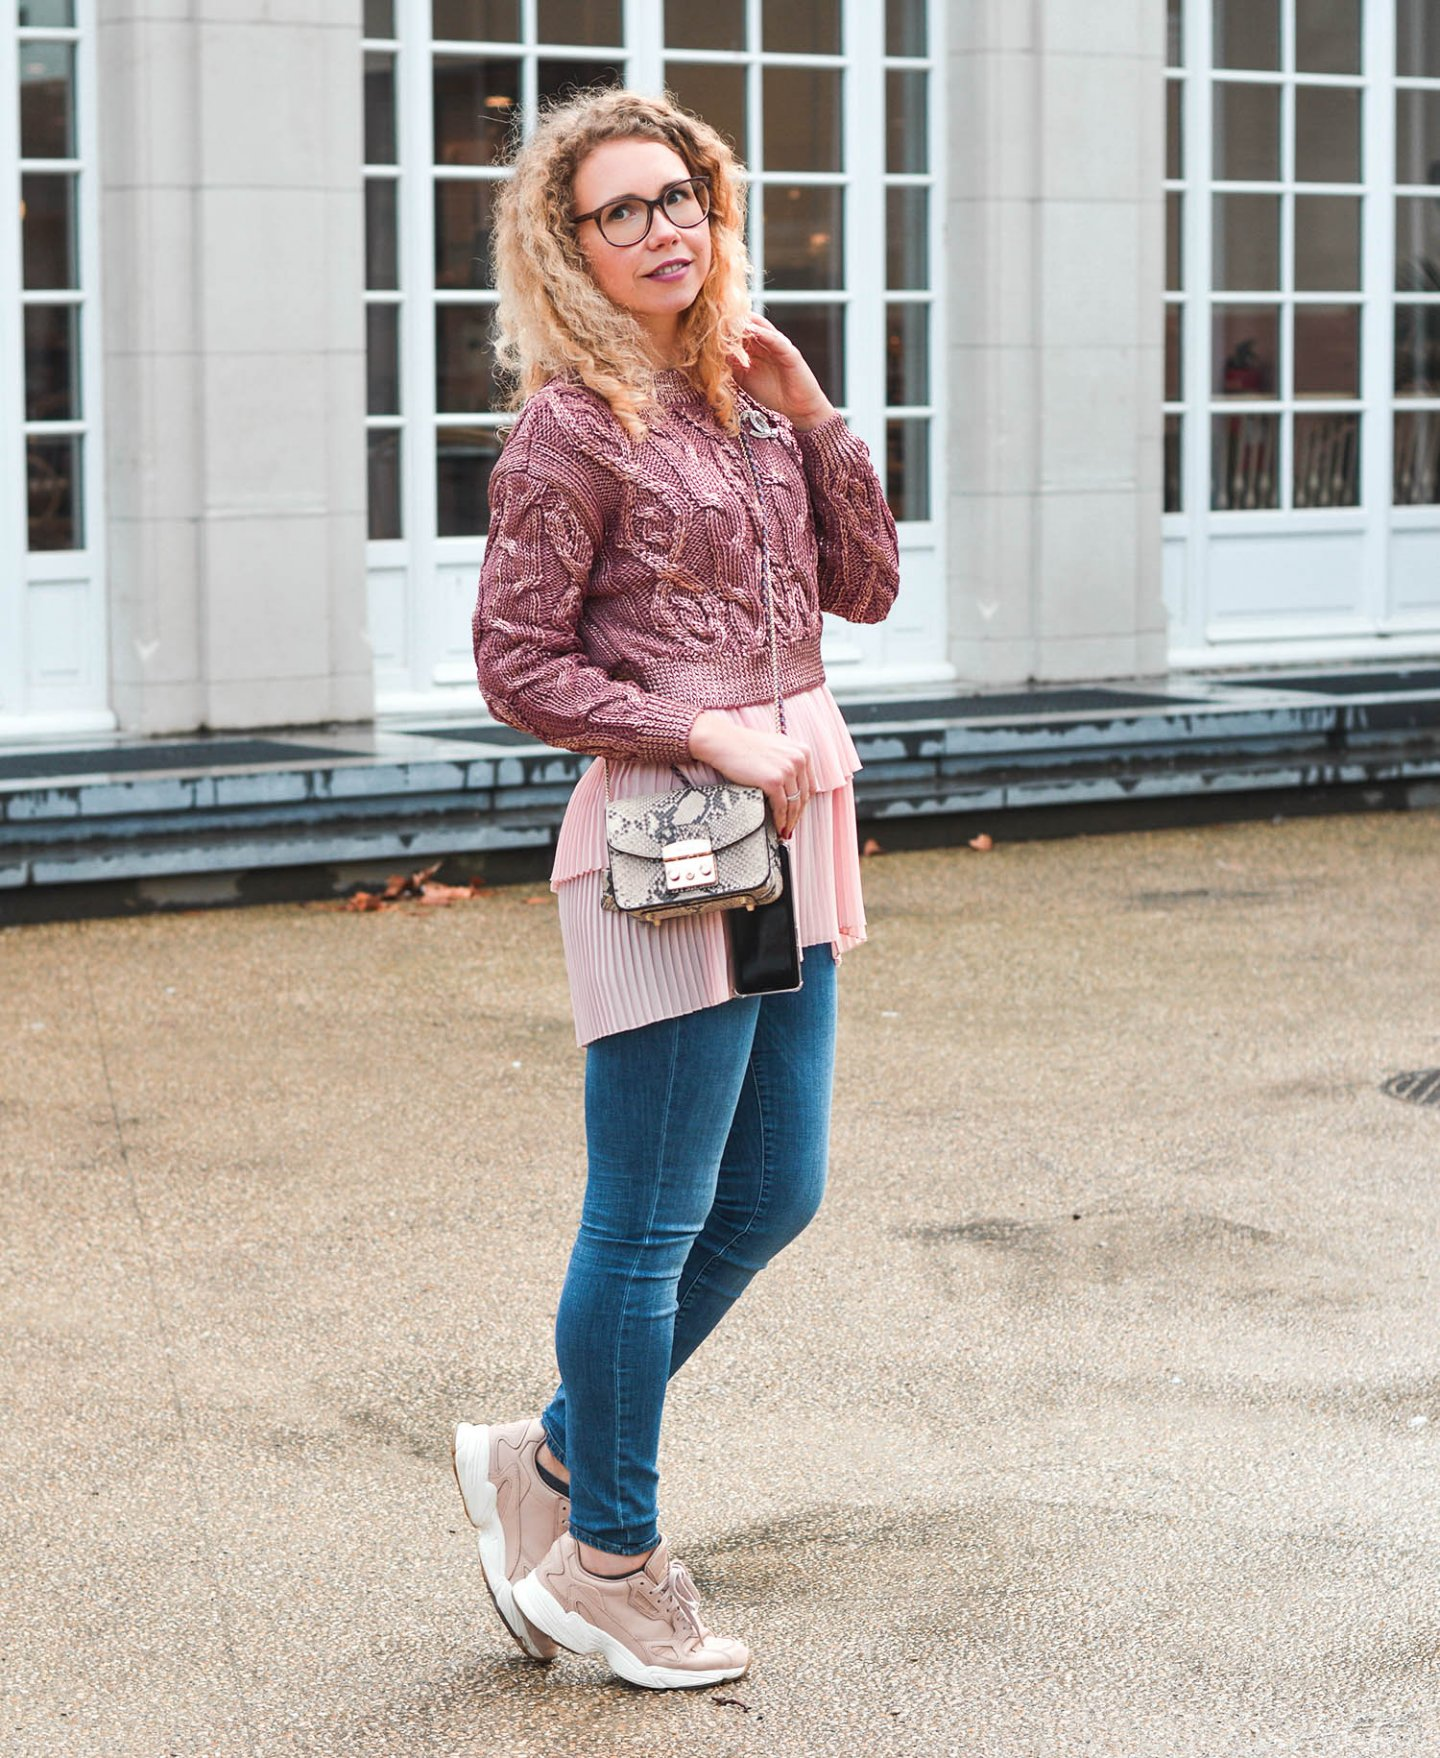 Cropped-Pullover-im-Lagenlook-kombinieren-Kationette-Fashionblog-Germany-Outfit